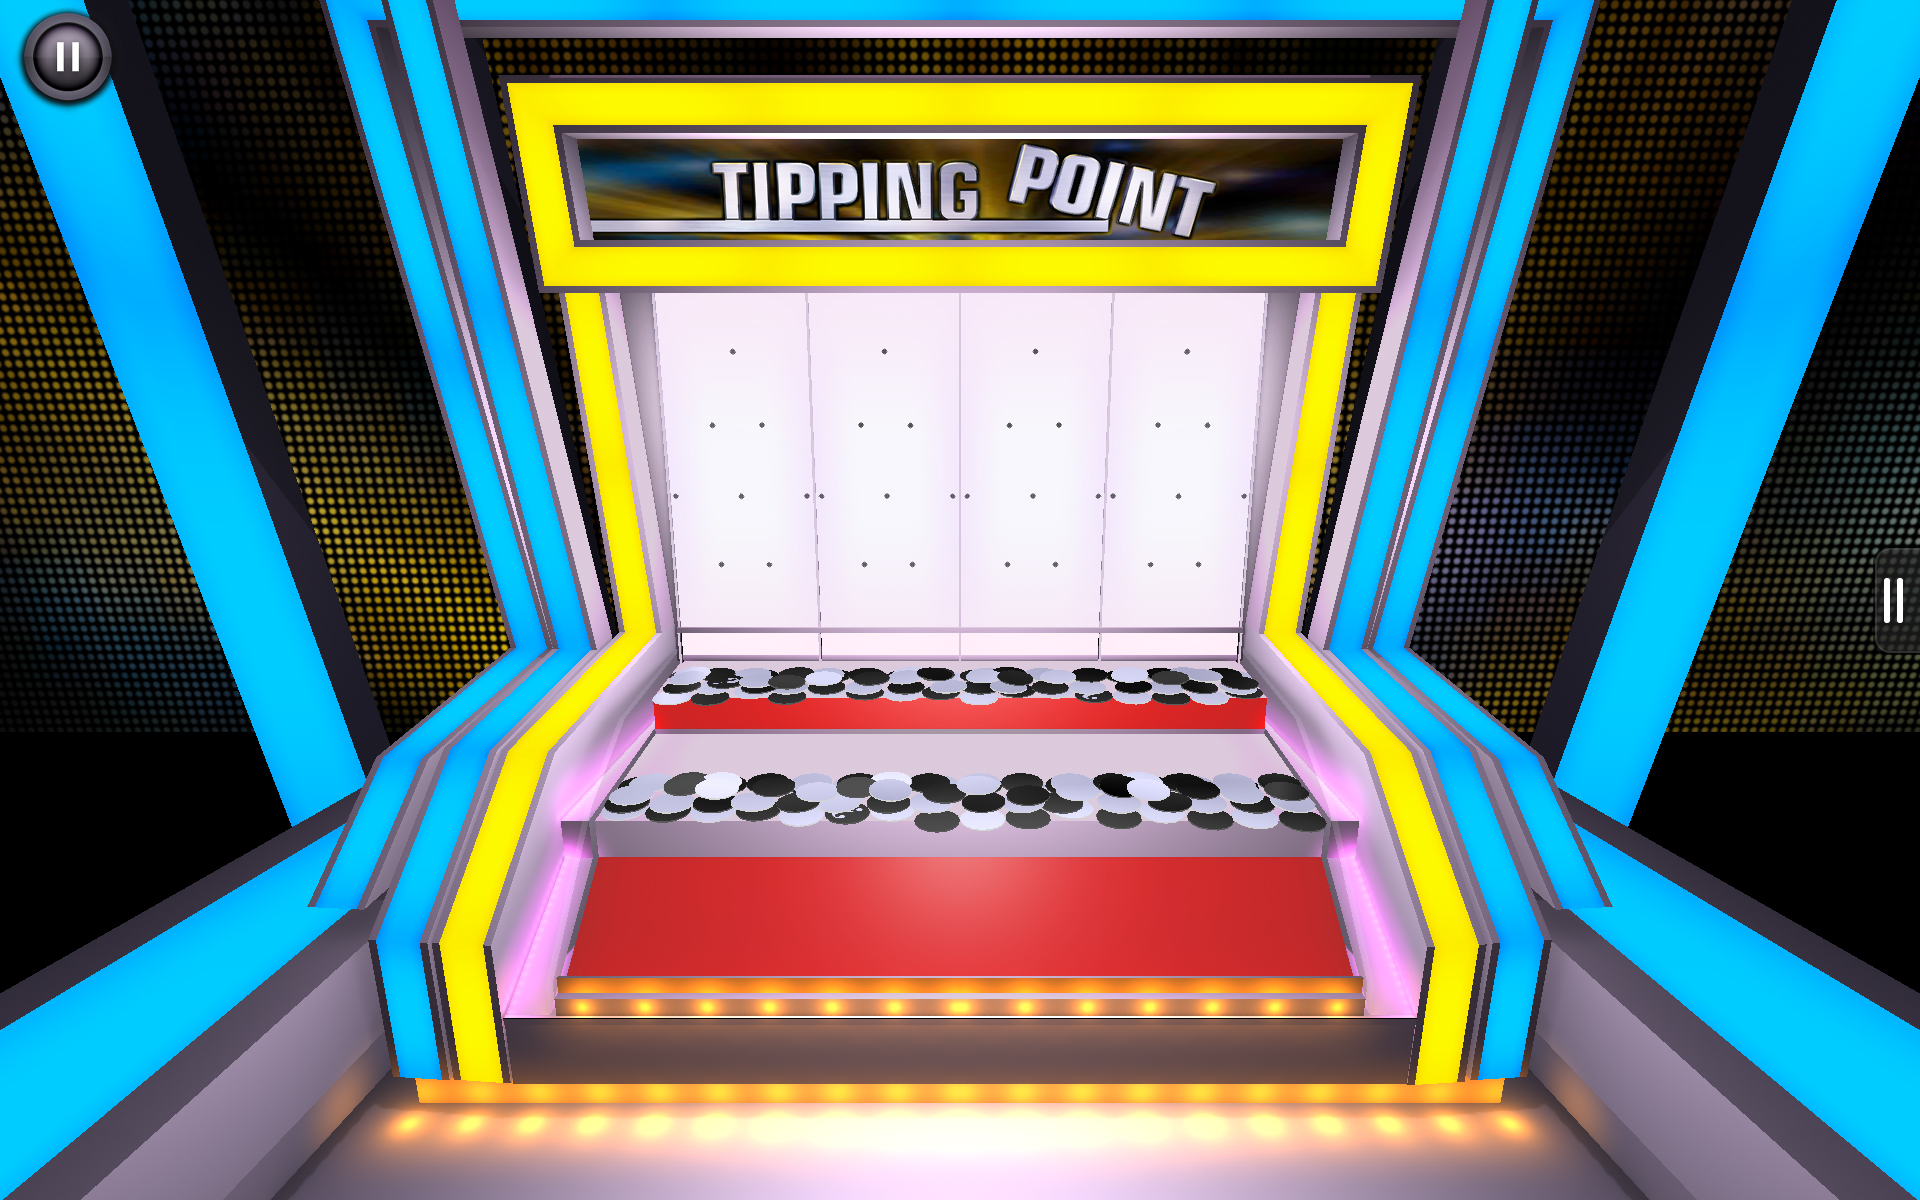 Tipping Point Amazon Co Uk Appstore For Android